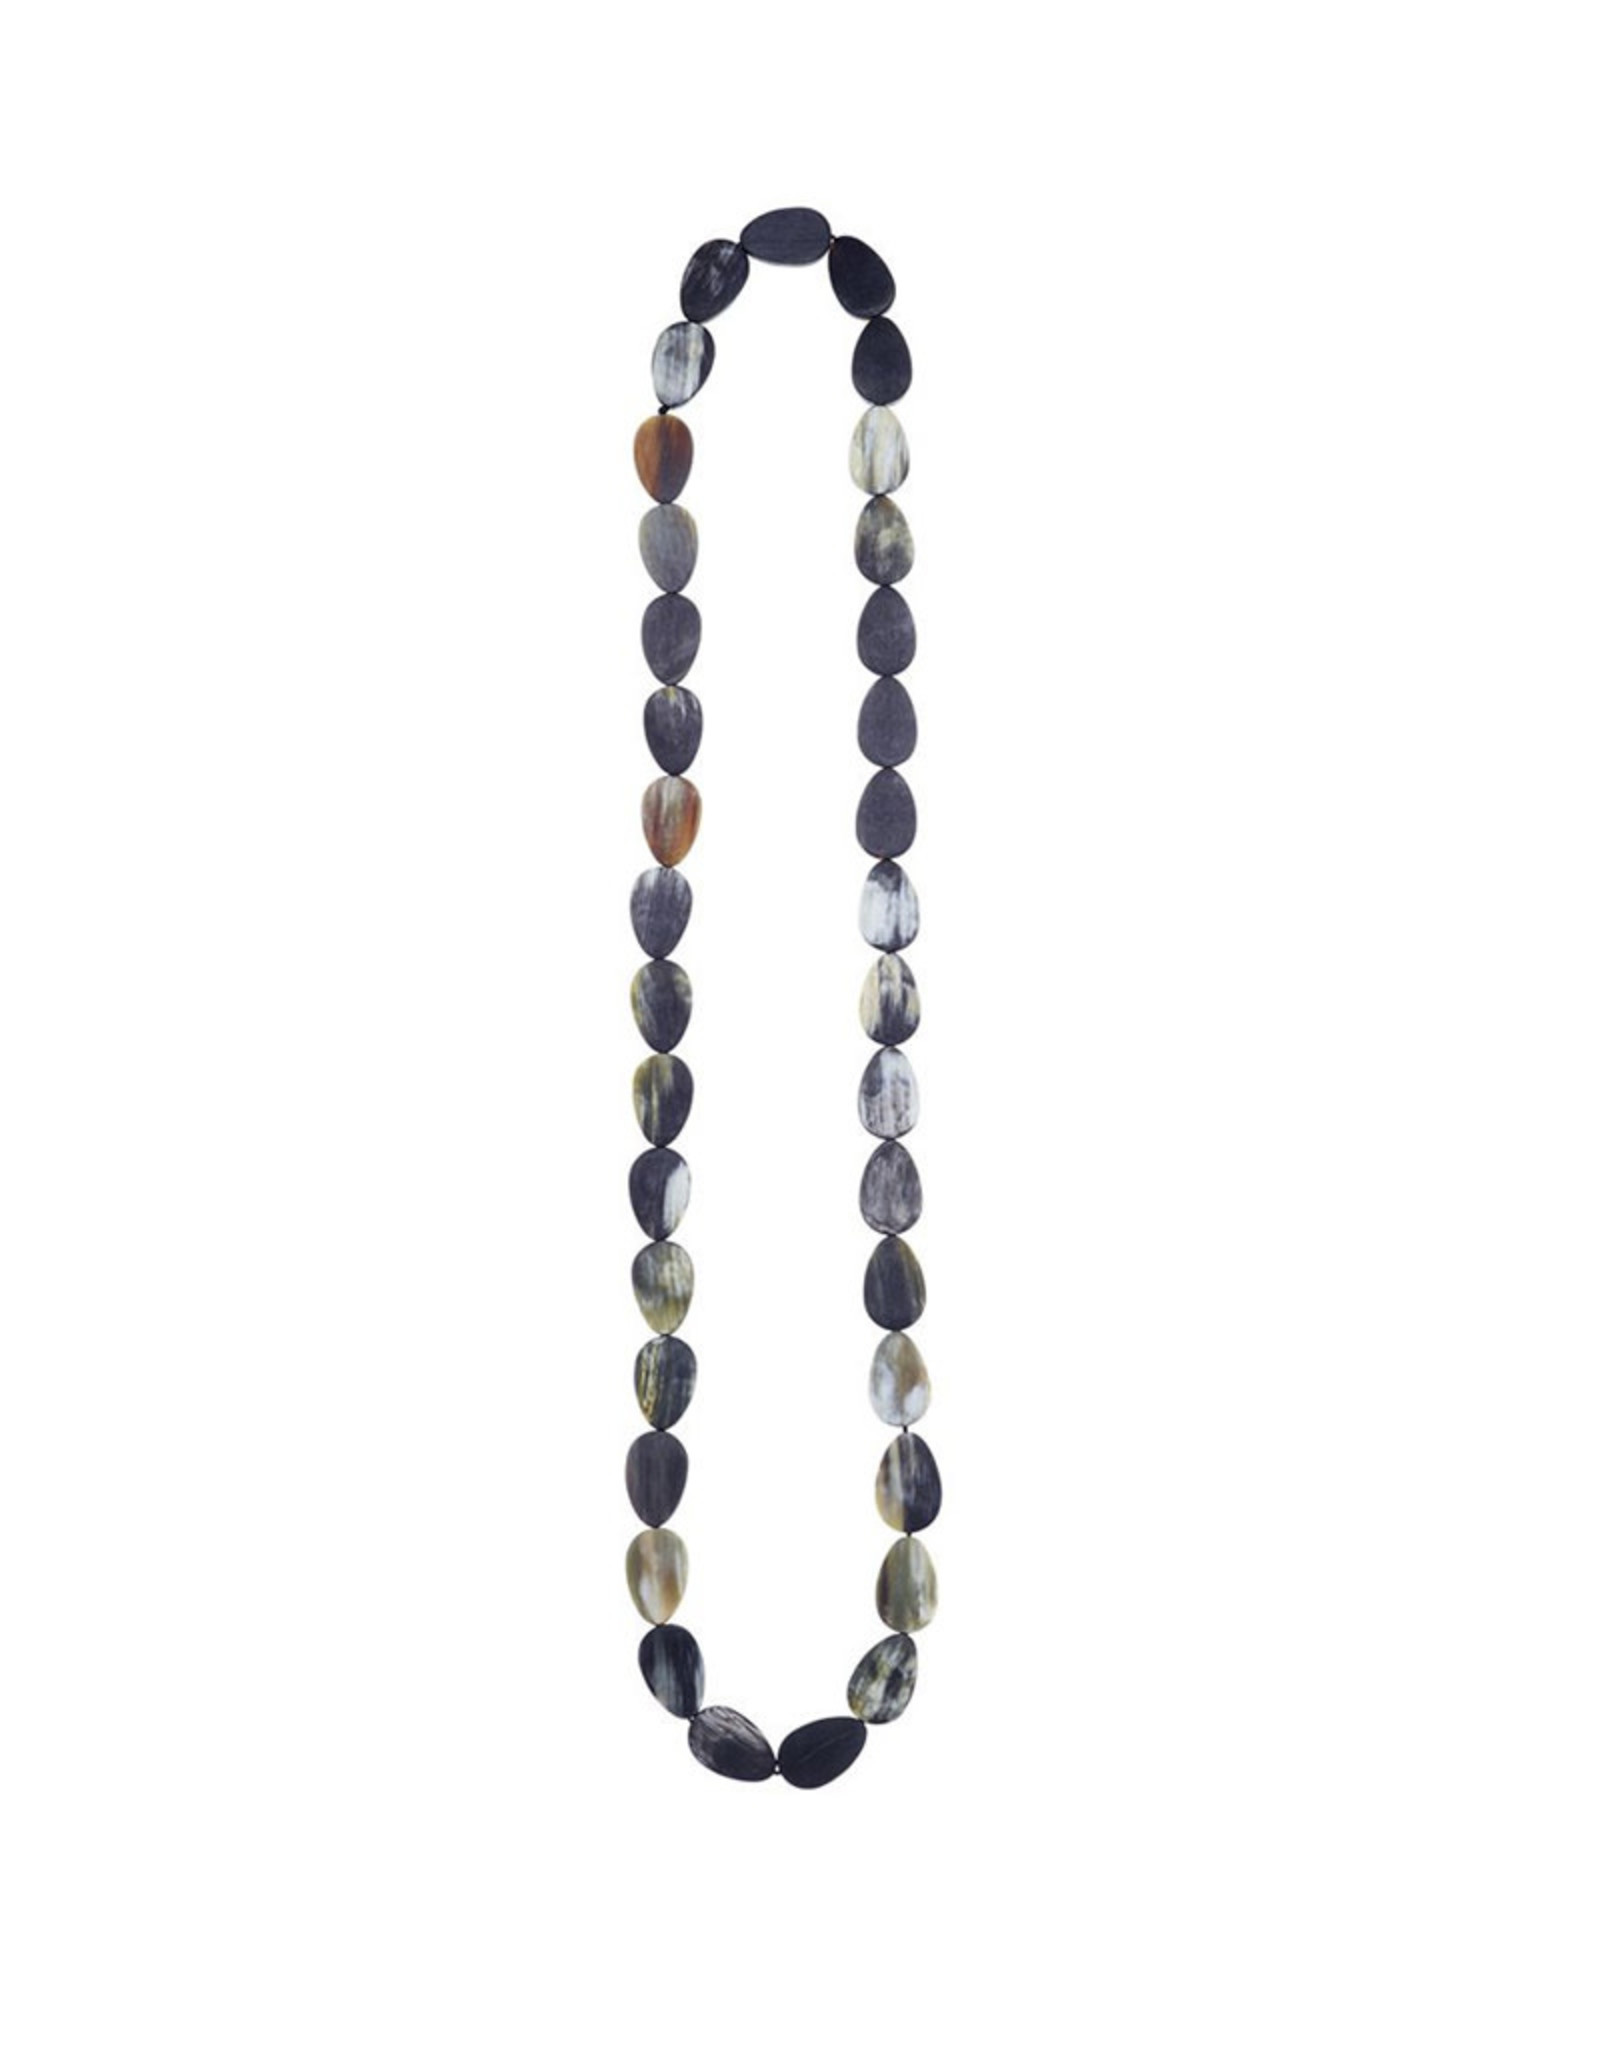 CATH.S CATH.S NECKLACE HORN NEW OVALS LONG